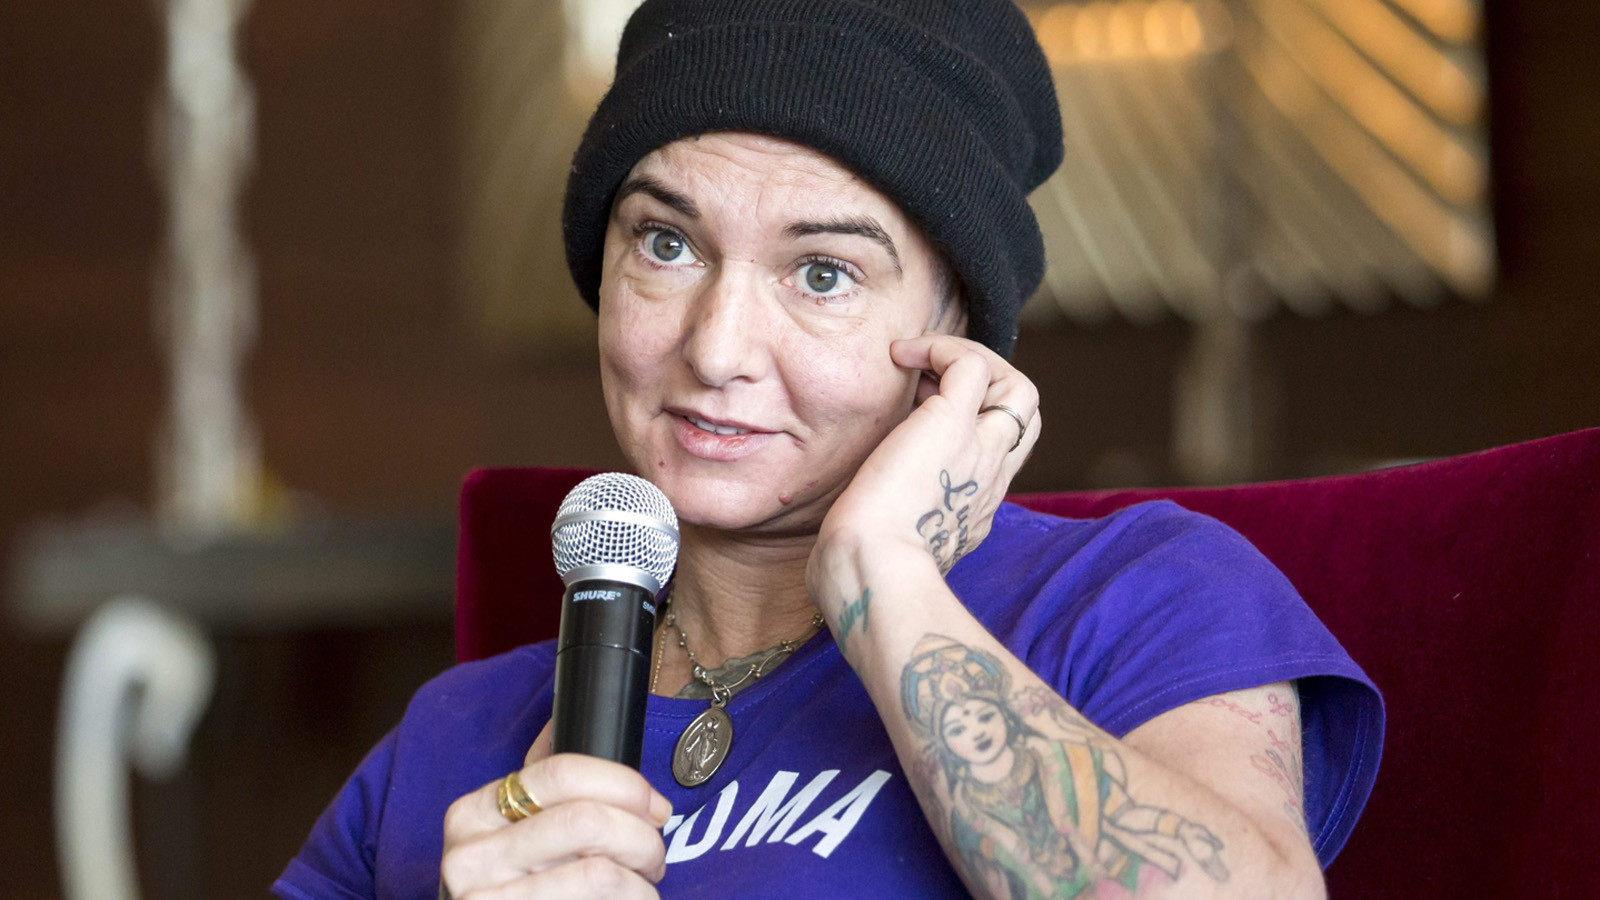 Sinead O'Connor says she's 'safe' and 'not suicidal' after emotional video